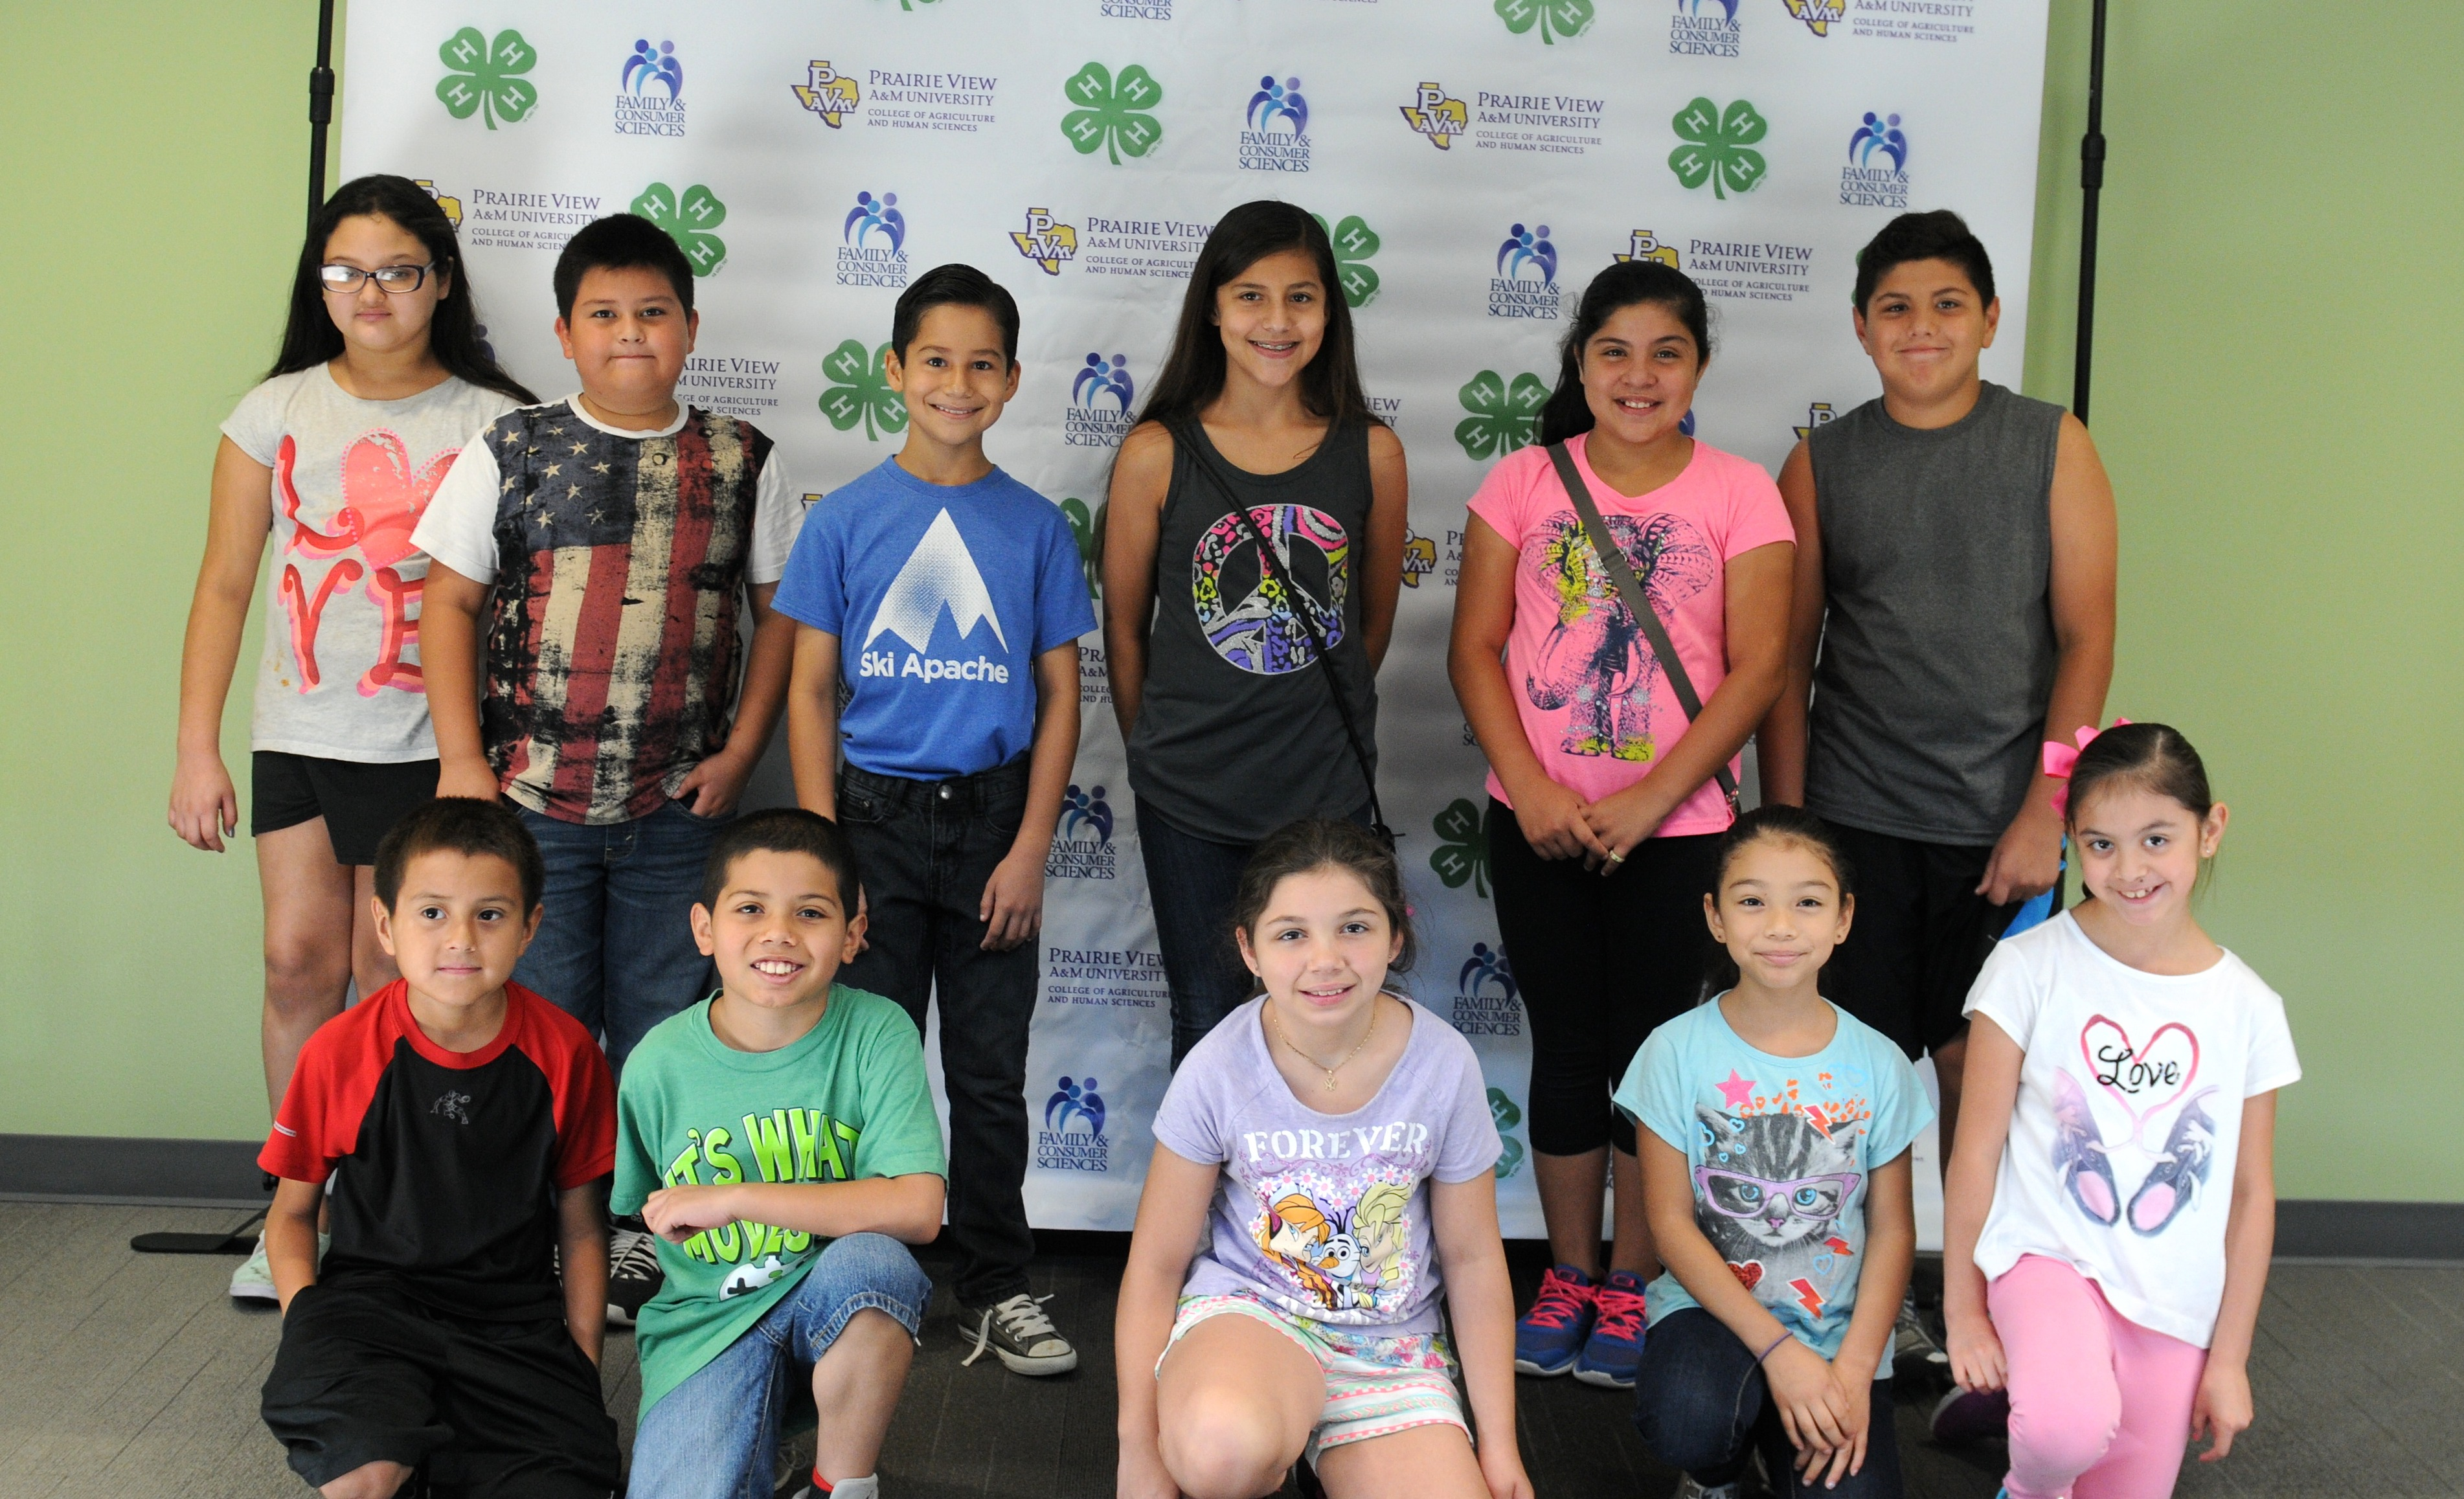 Heroes for Health Nutrition Camp encourages healthy living to HCISD youth